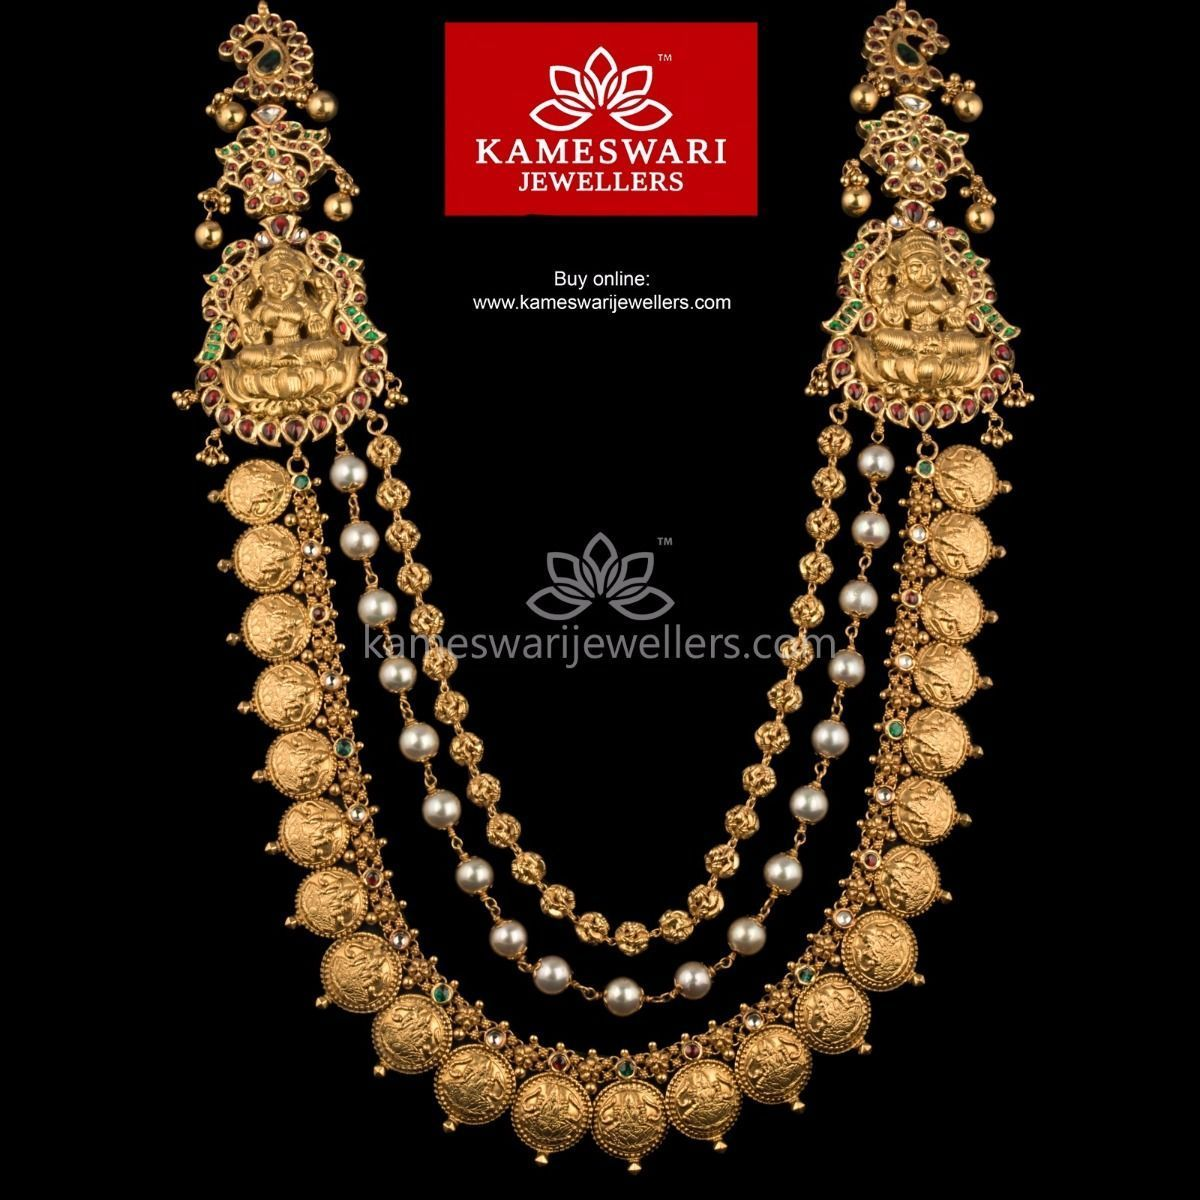 f522e8ff45 Buy traditional Necklaces online at Kameswari Jewellers in India ...